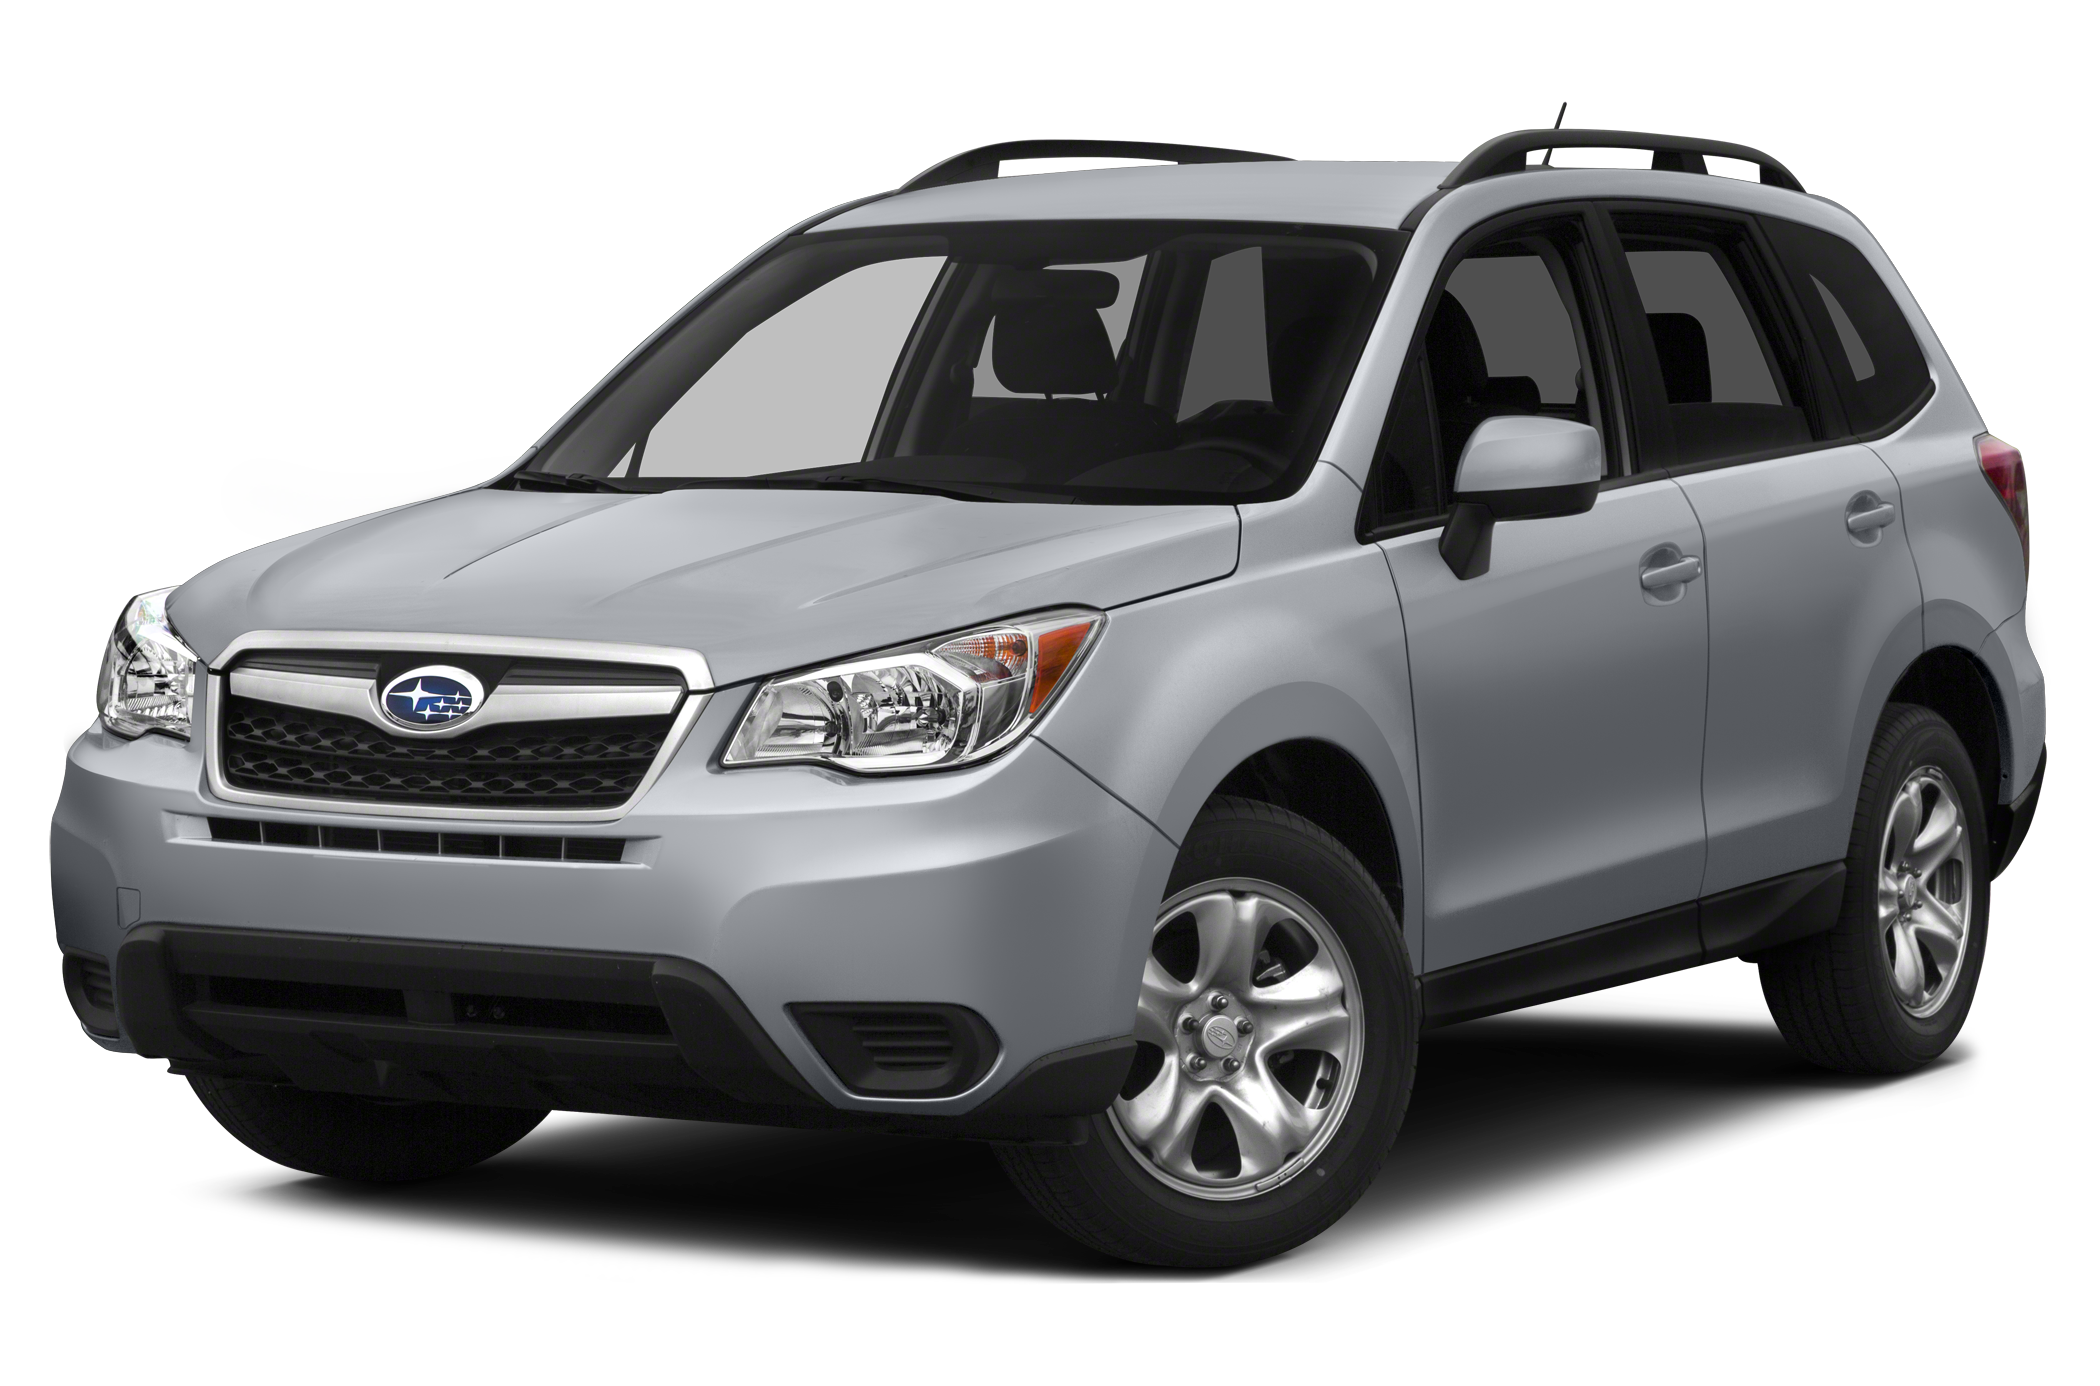 Available in 6 styles: 2015 Subaru Forester 4dr AWD shown